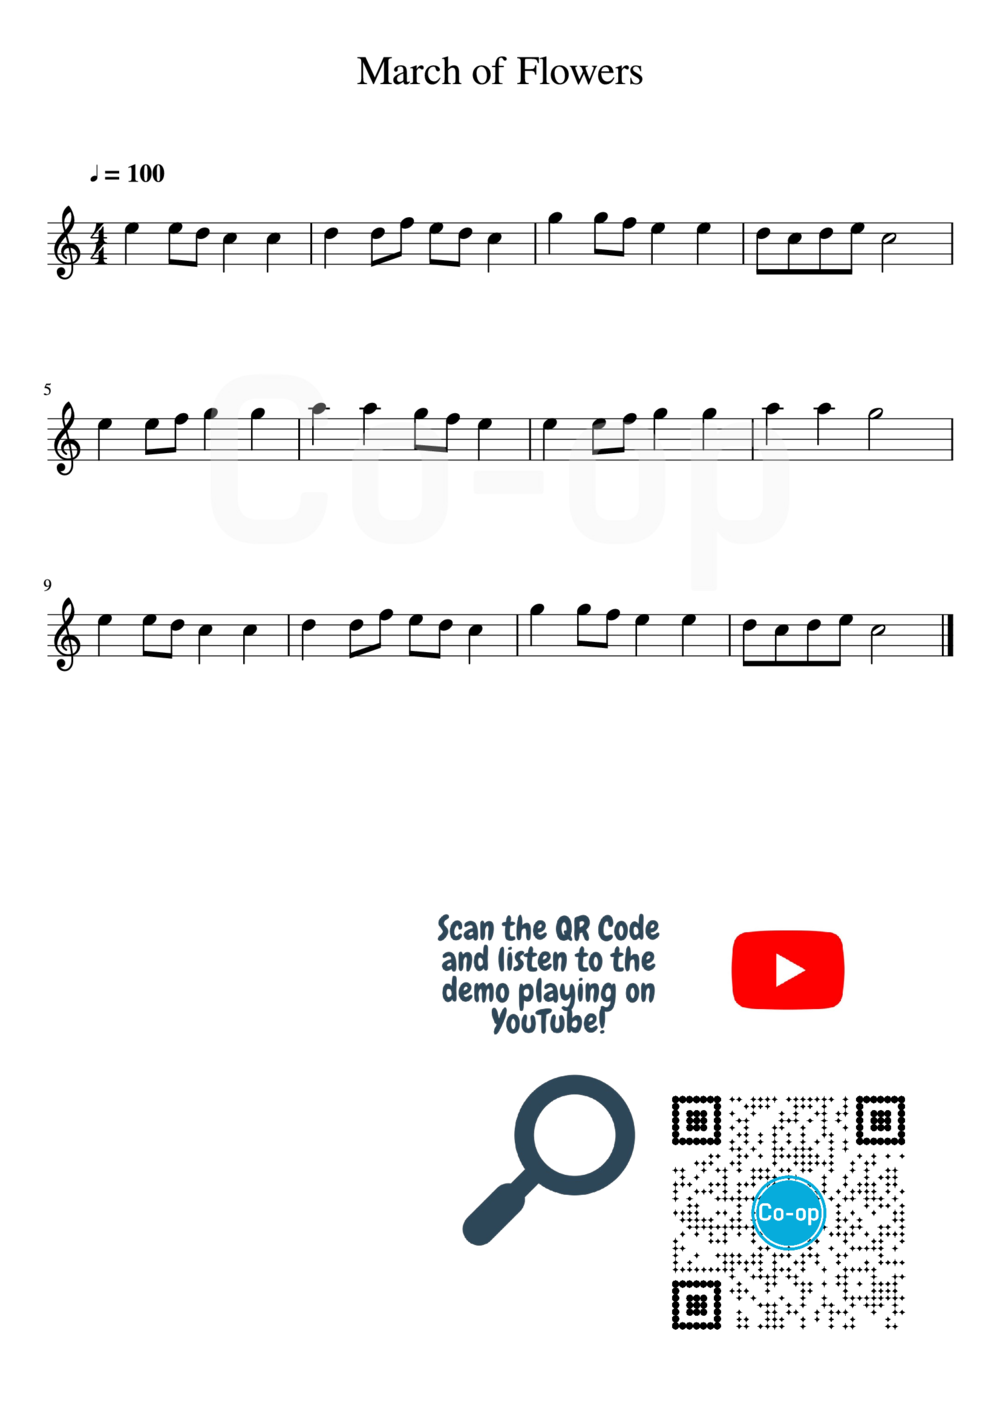 March of Flowers | Staff Notation | Free Sheet Music